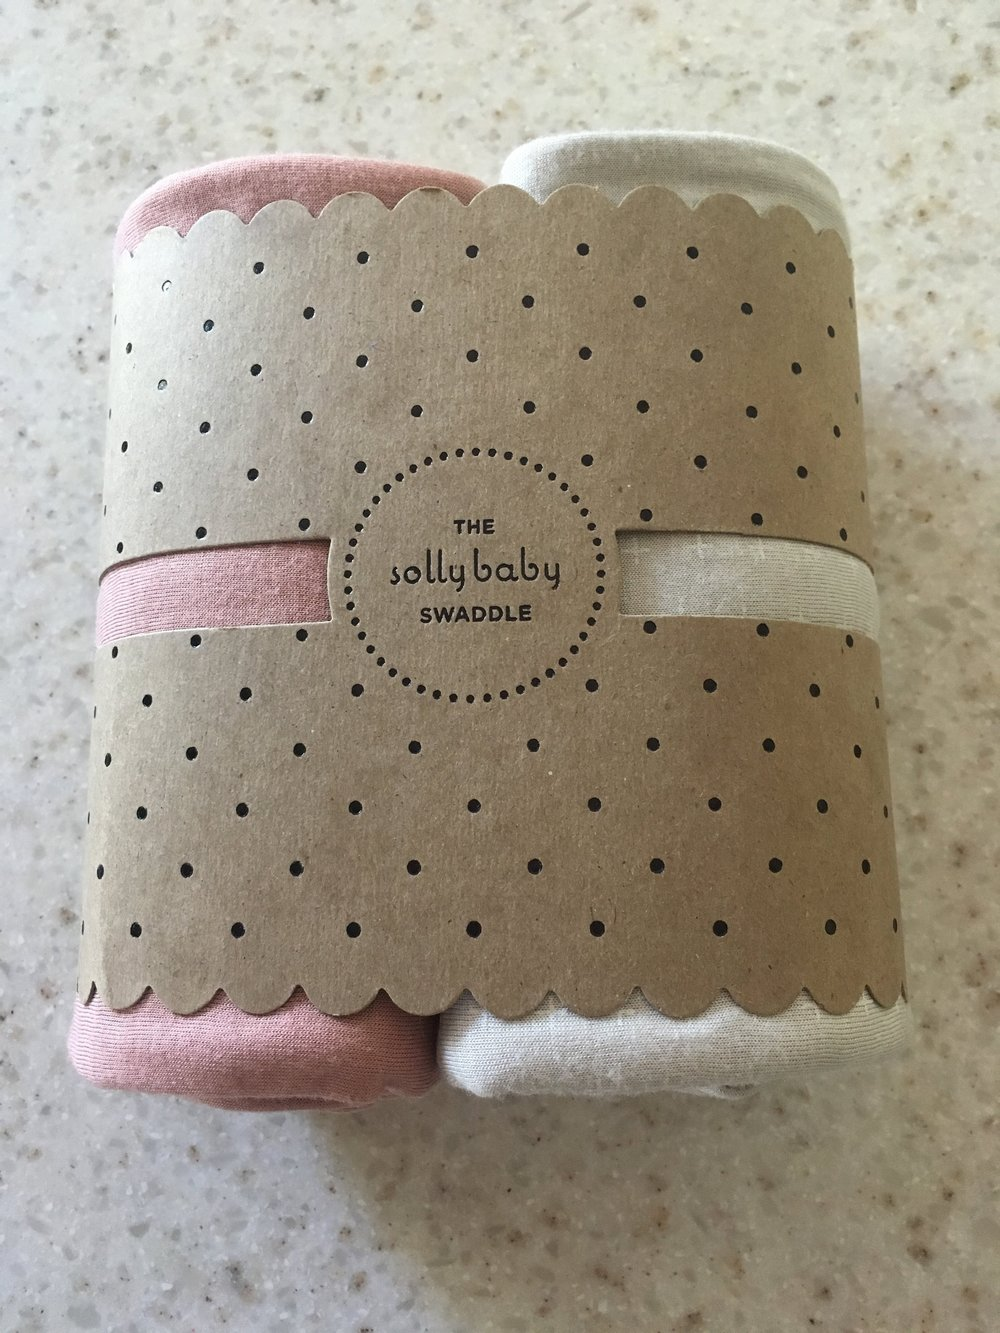 Solly Baby Swaddle Blanket Review